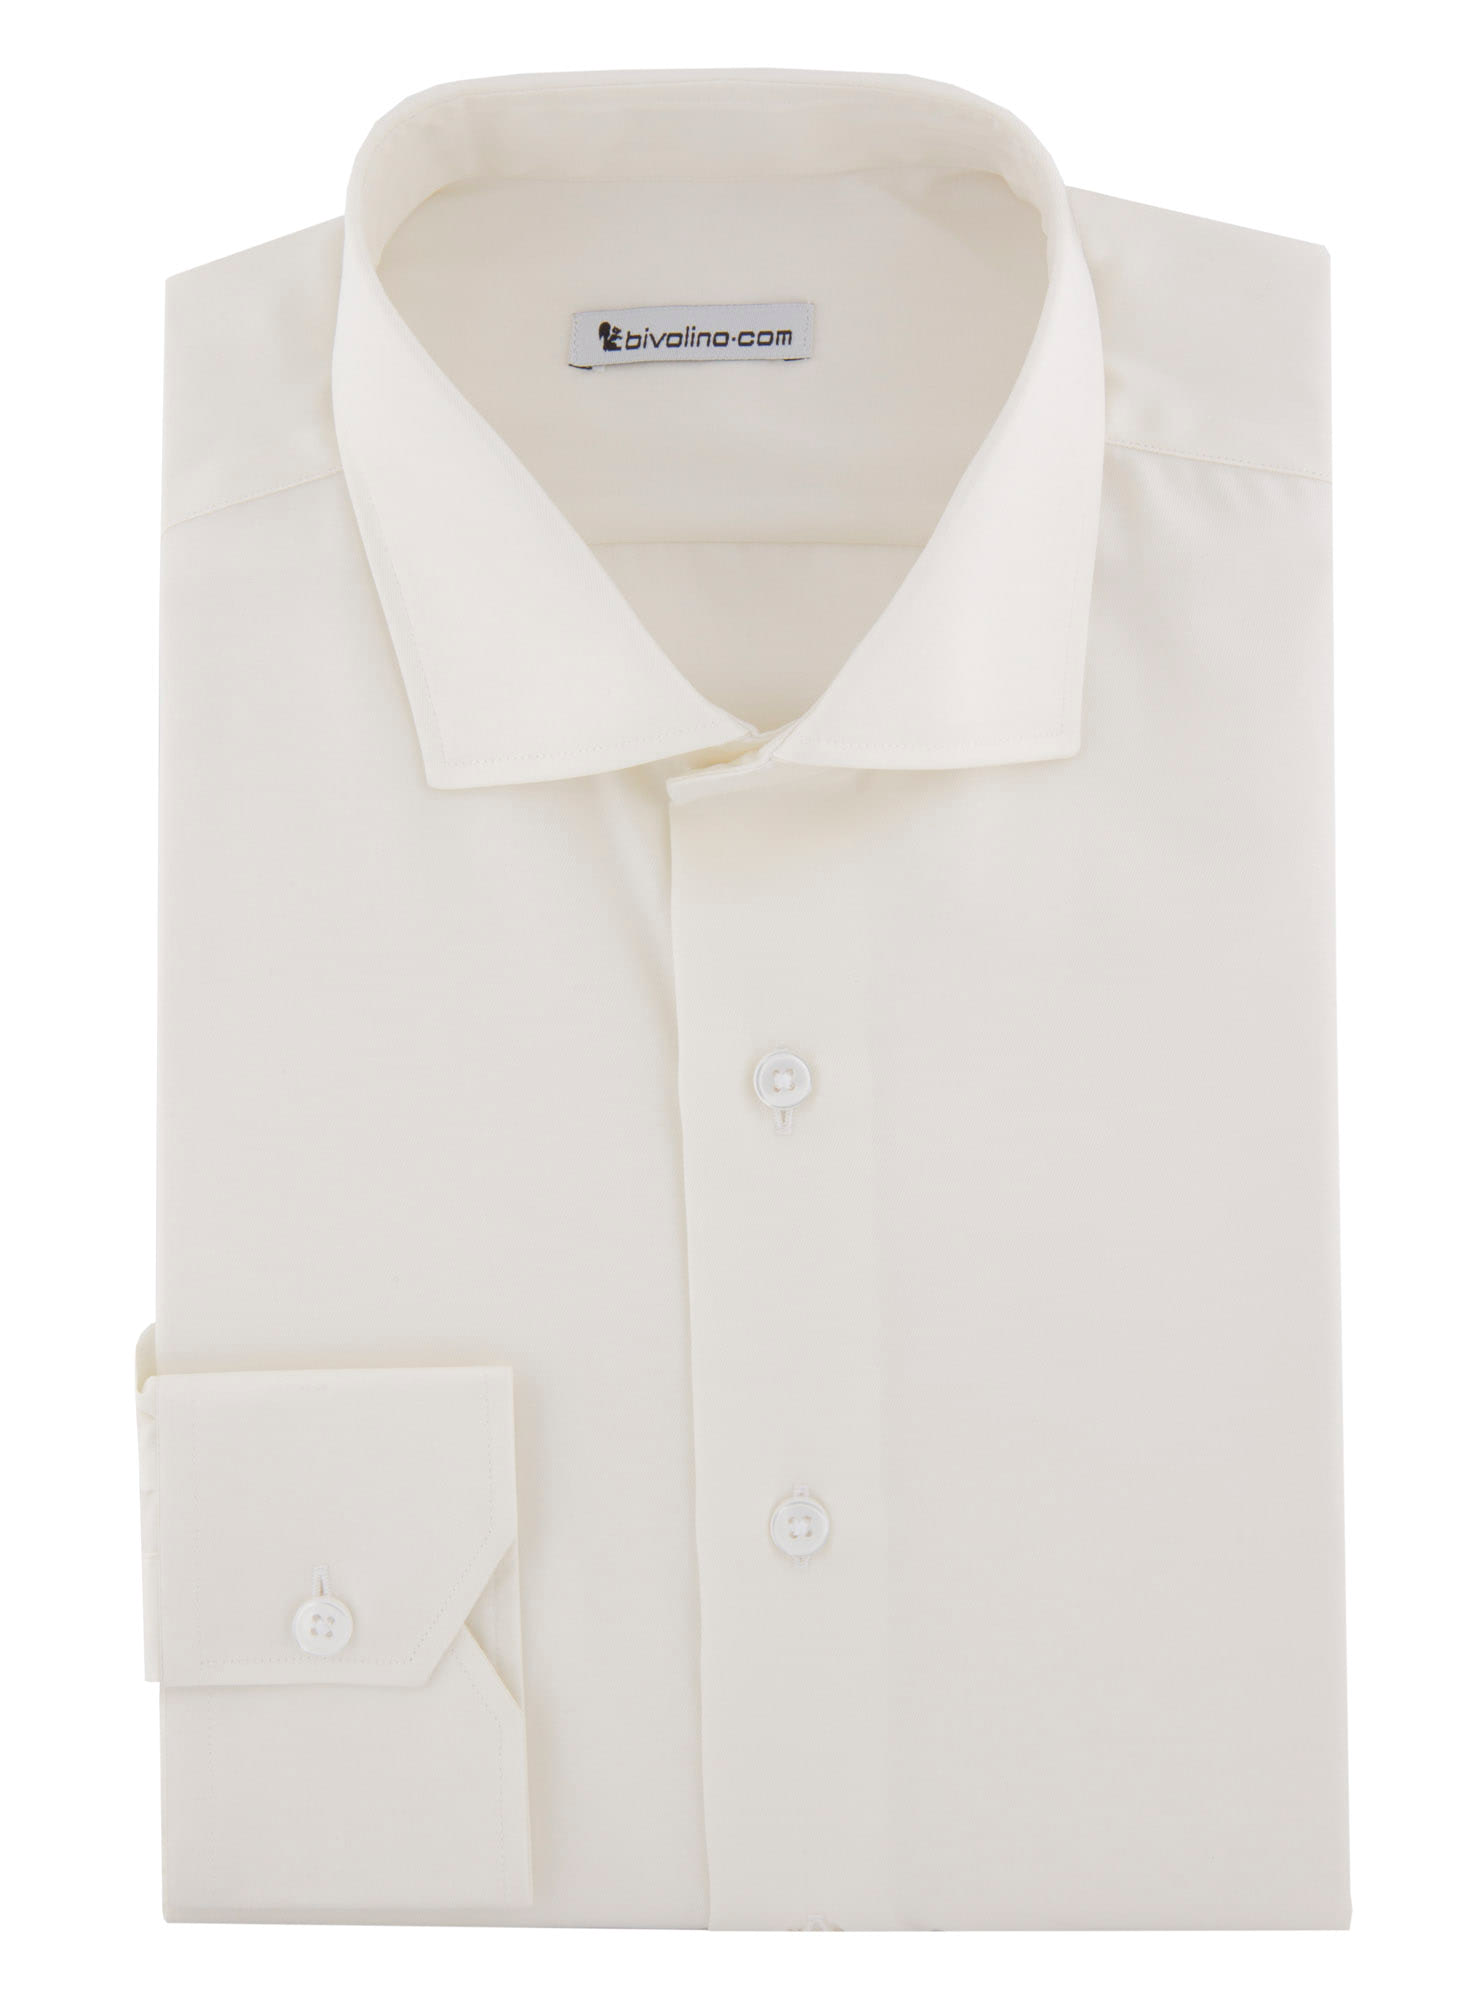 Vallina - Shirt twill yellow-ivory non-iron - Opal 3